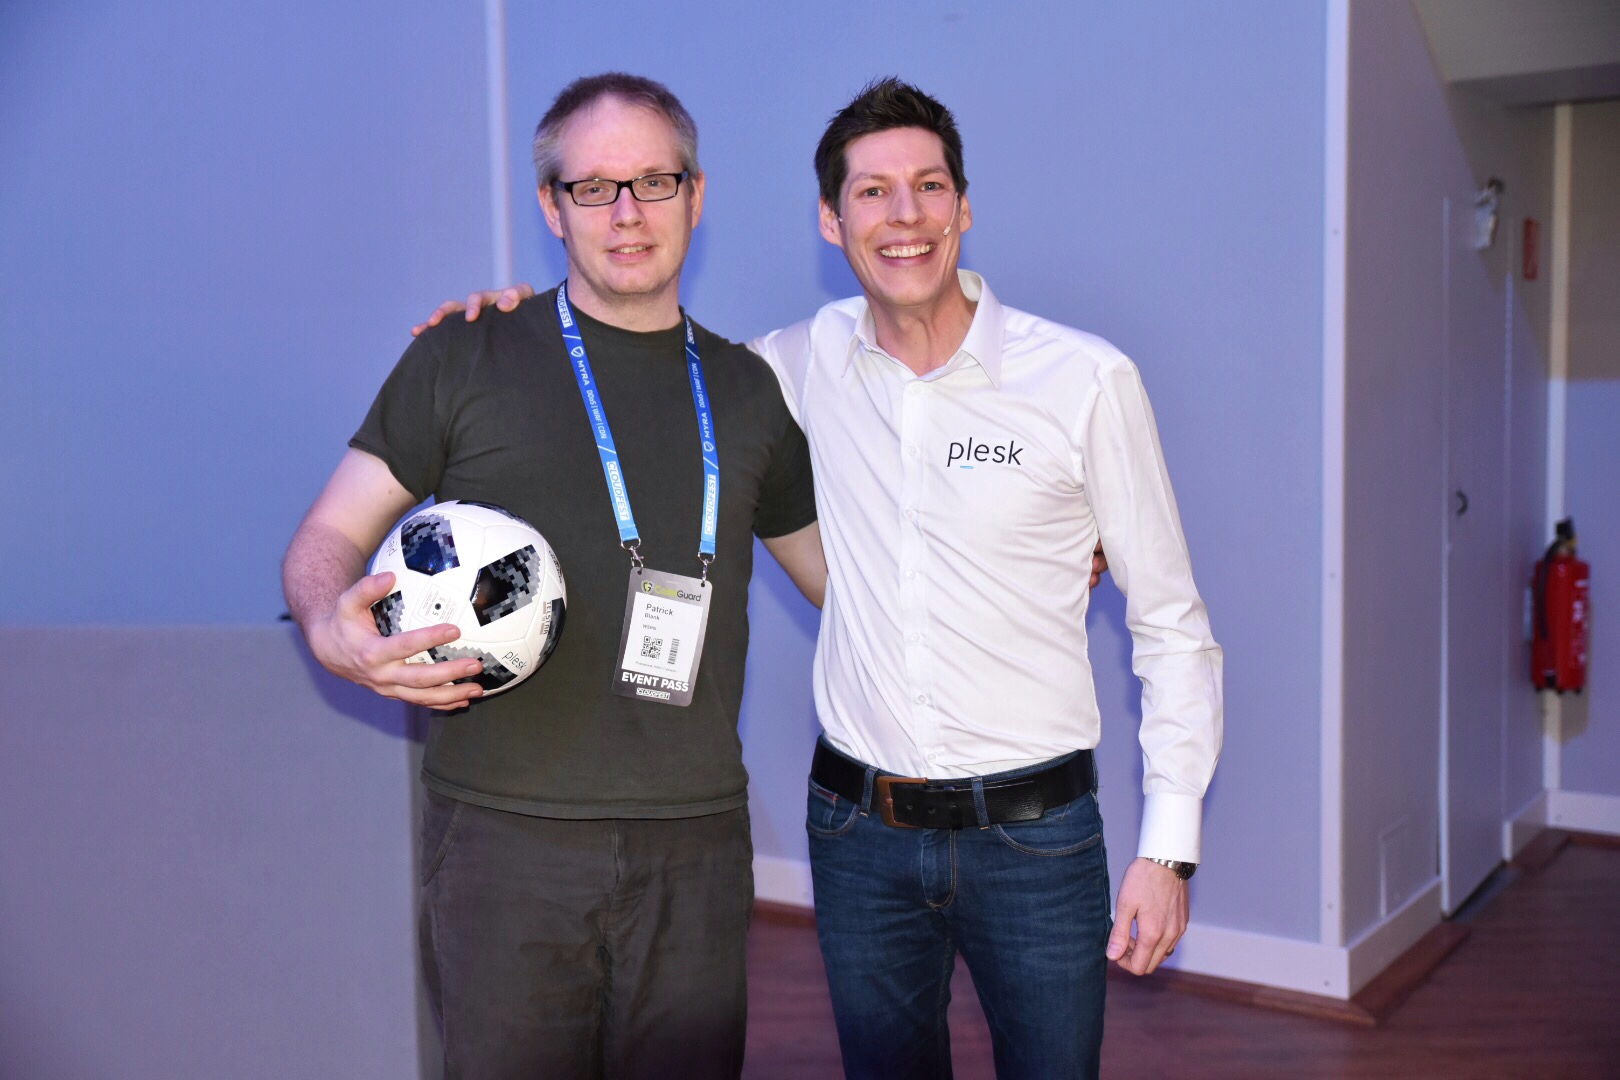 Plesk Cloudfest 2018 Talk - Jan Loeffler with football winner Patrick Blank from WSPN